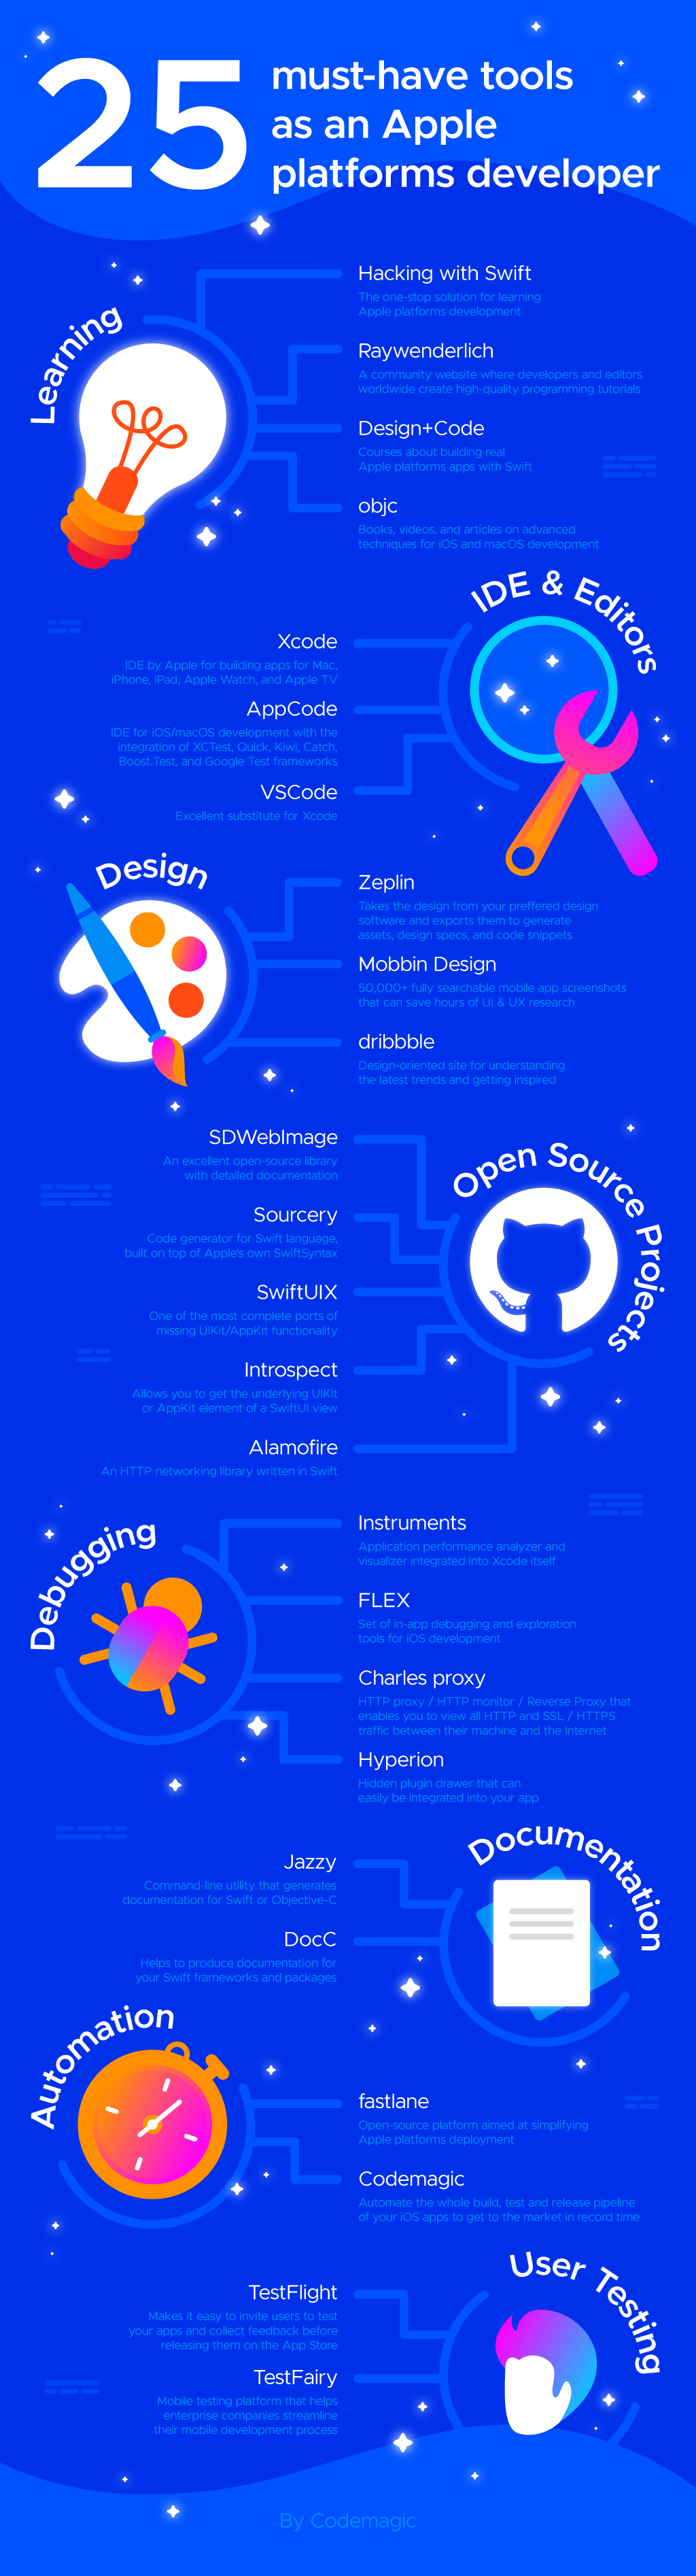 Infographic: 25 must-have tools for iOS developers